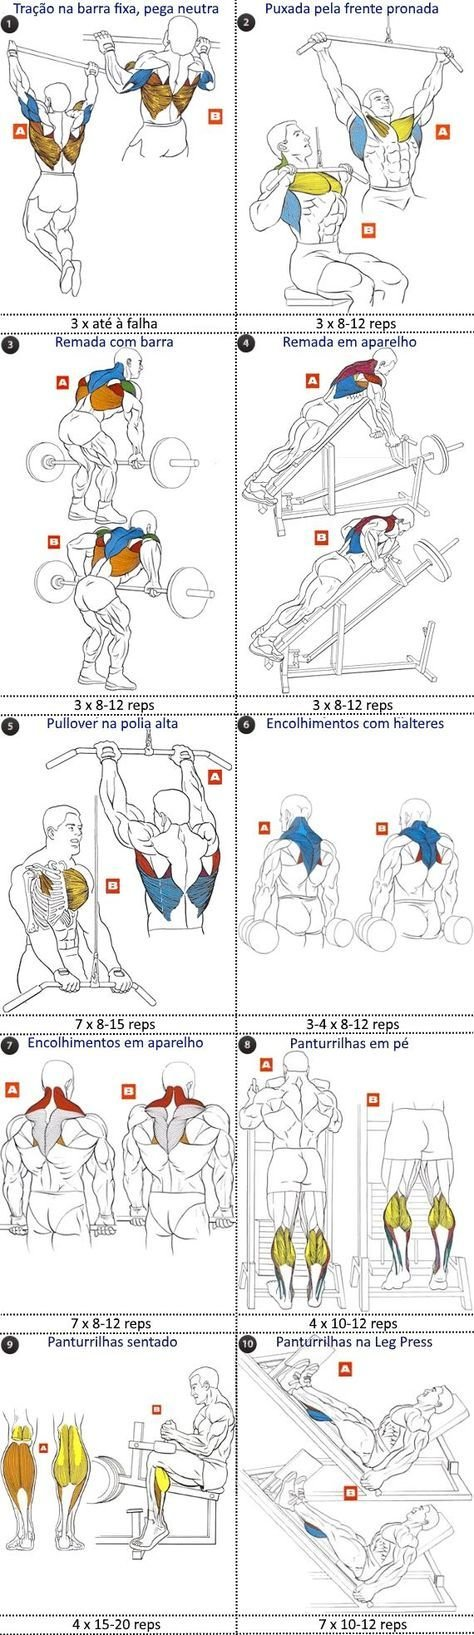 The Pullup Exercise Anatomy. Pullups are recognized as the king of ...